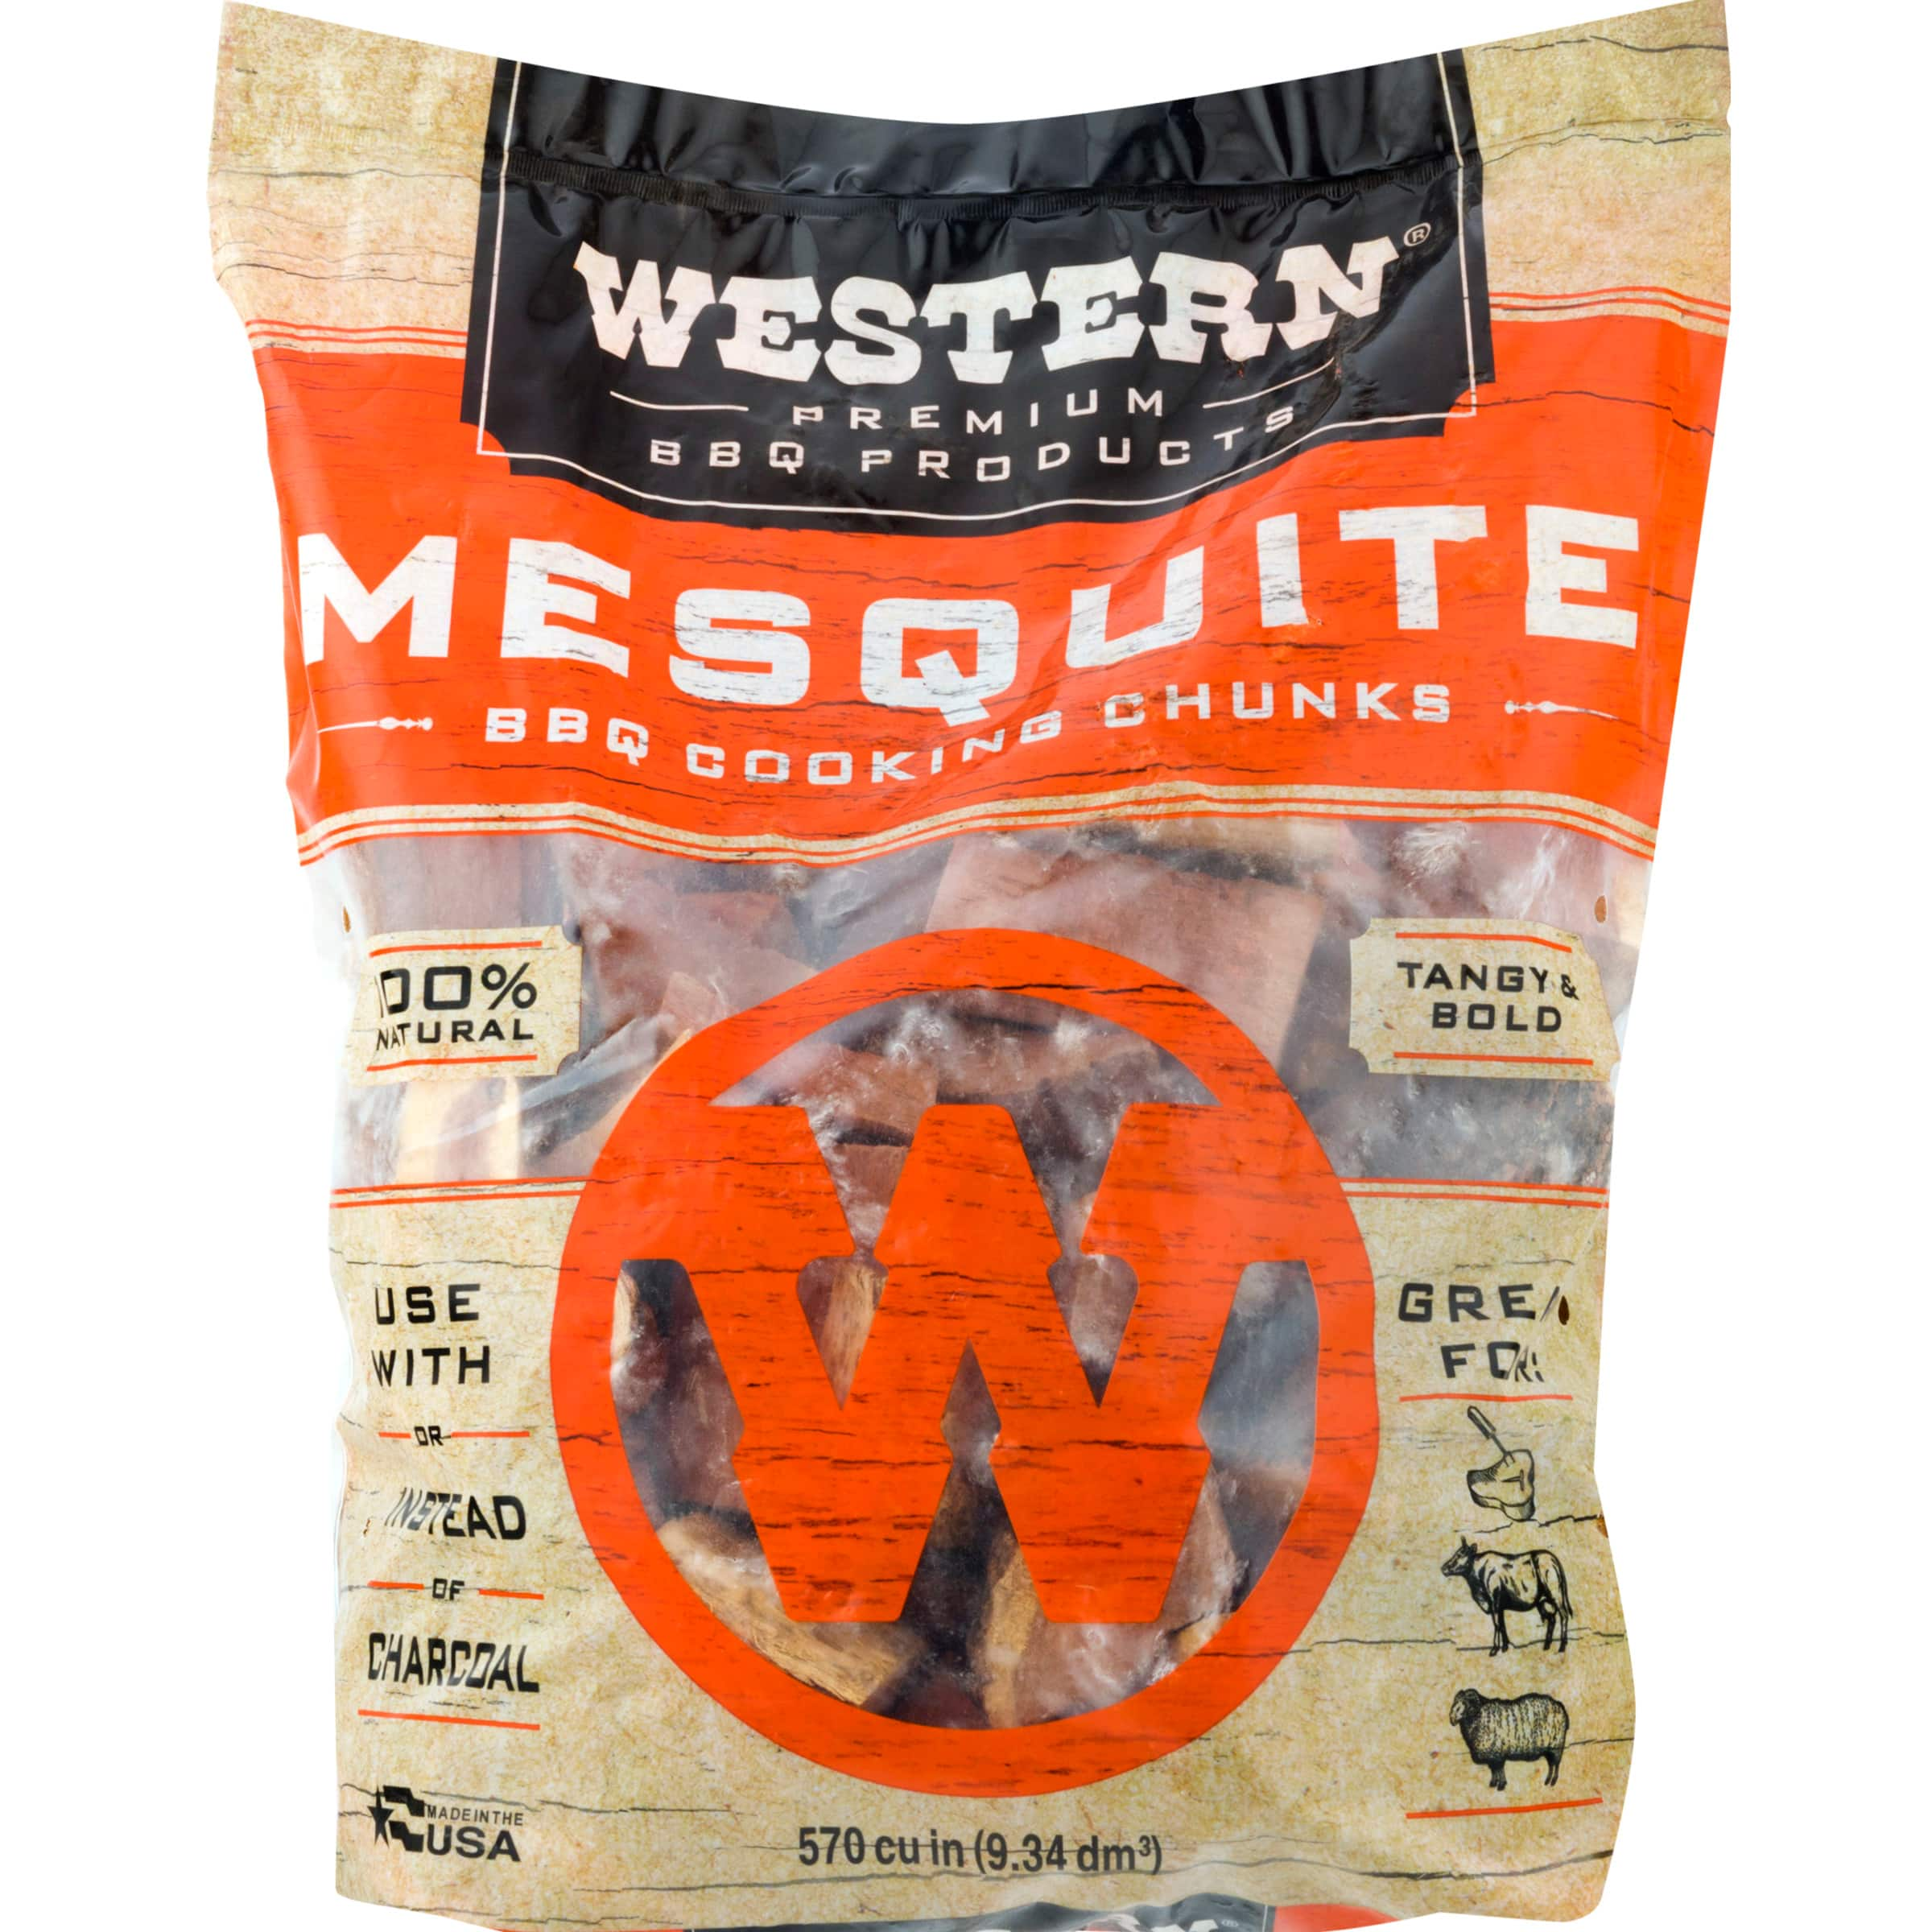 Western Premium BBQ Products Mesquite BBQ Smoking Cooking Chunks, 570 Cu In - $5.58 at Walmart